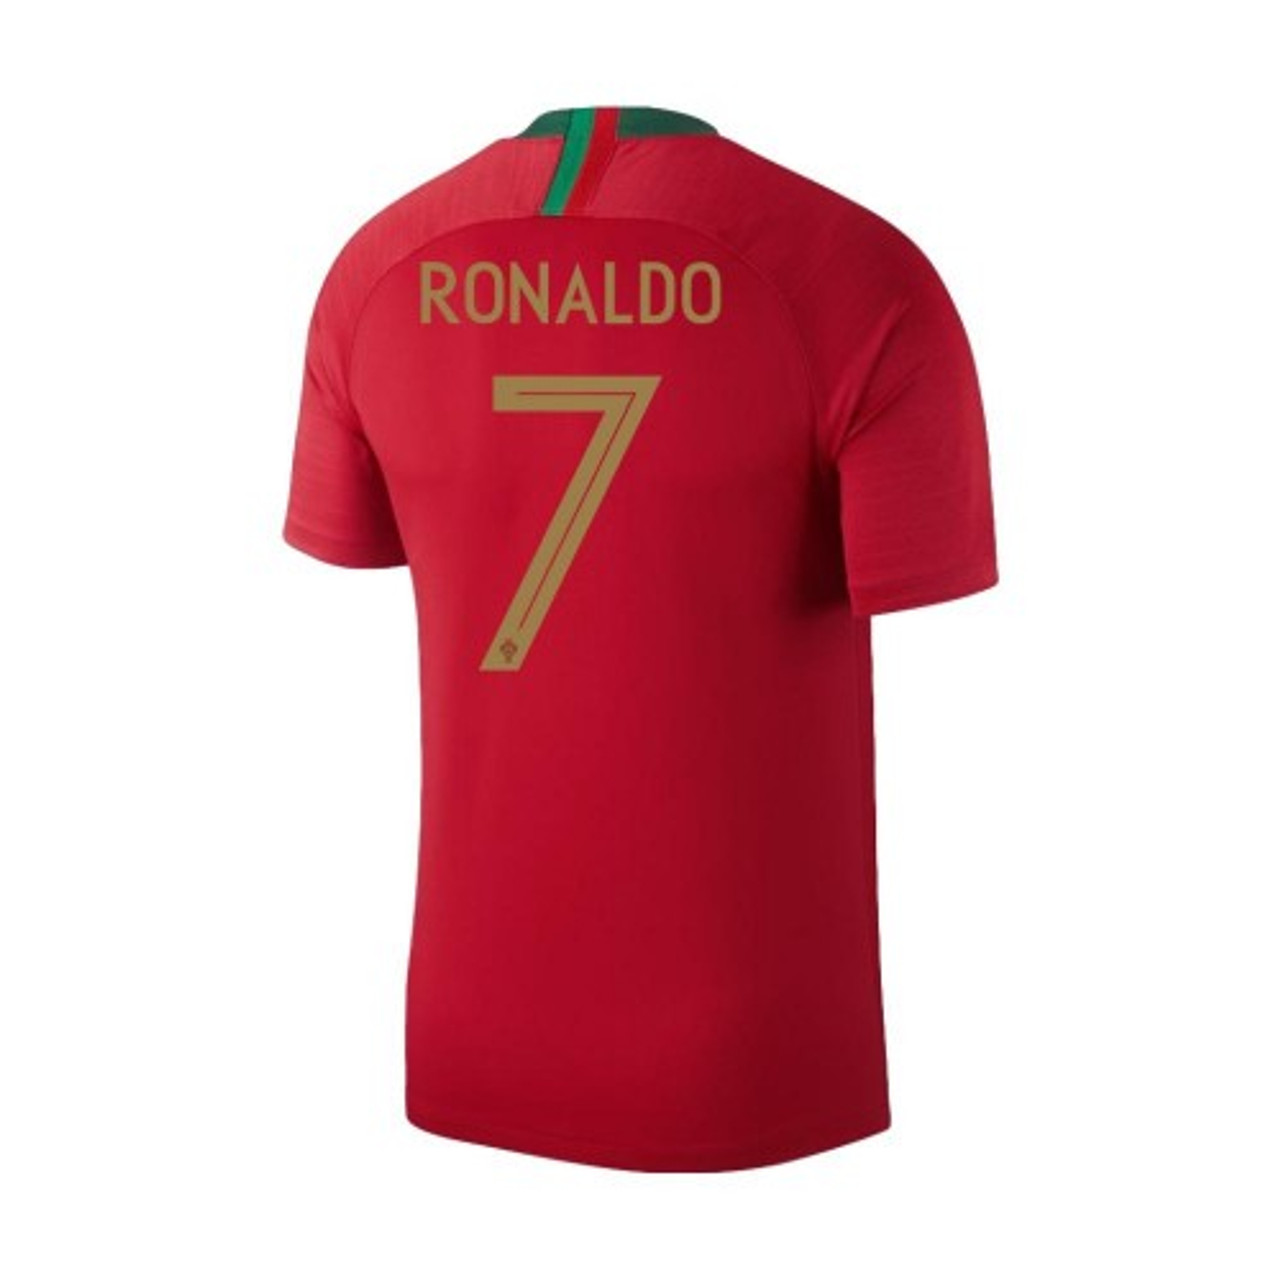 timeless design 63bc1 cb974 NIKE PORTUGAL 2018 HOME BOYS RONALDO JERSEY